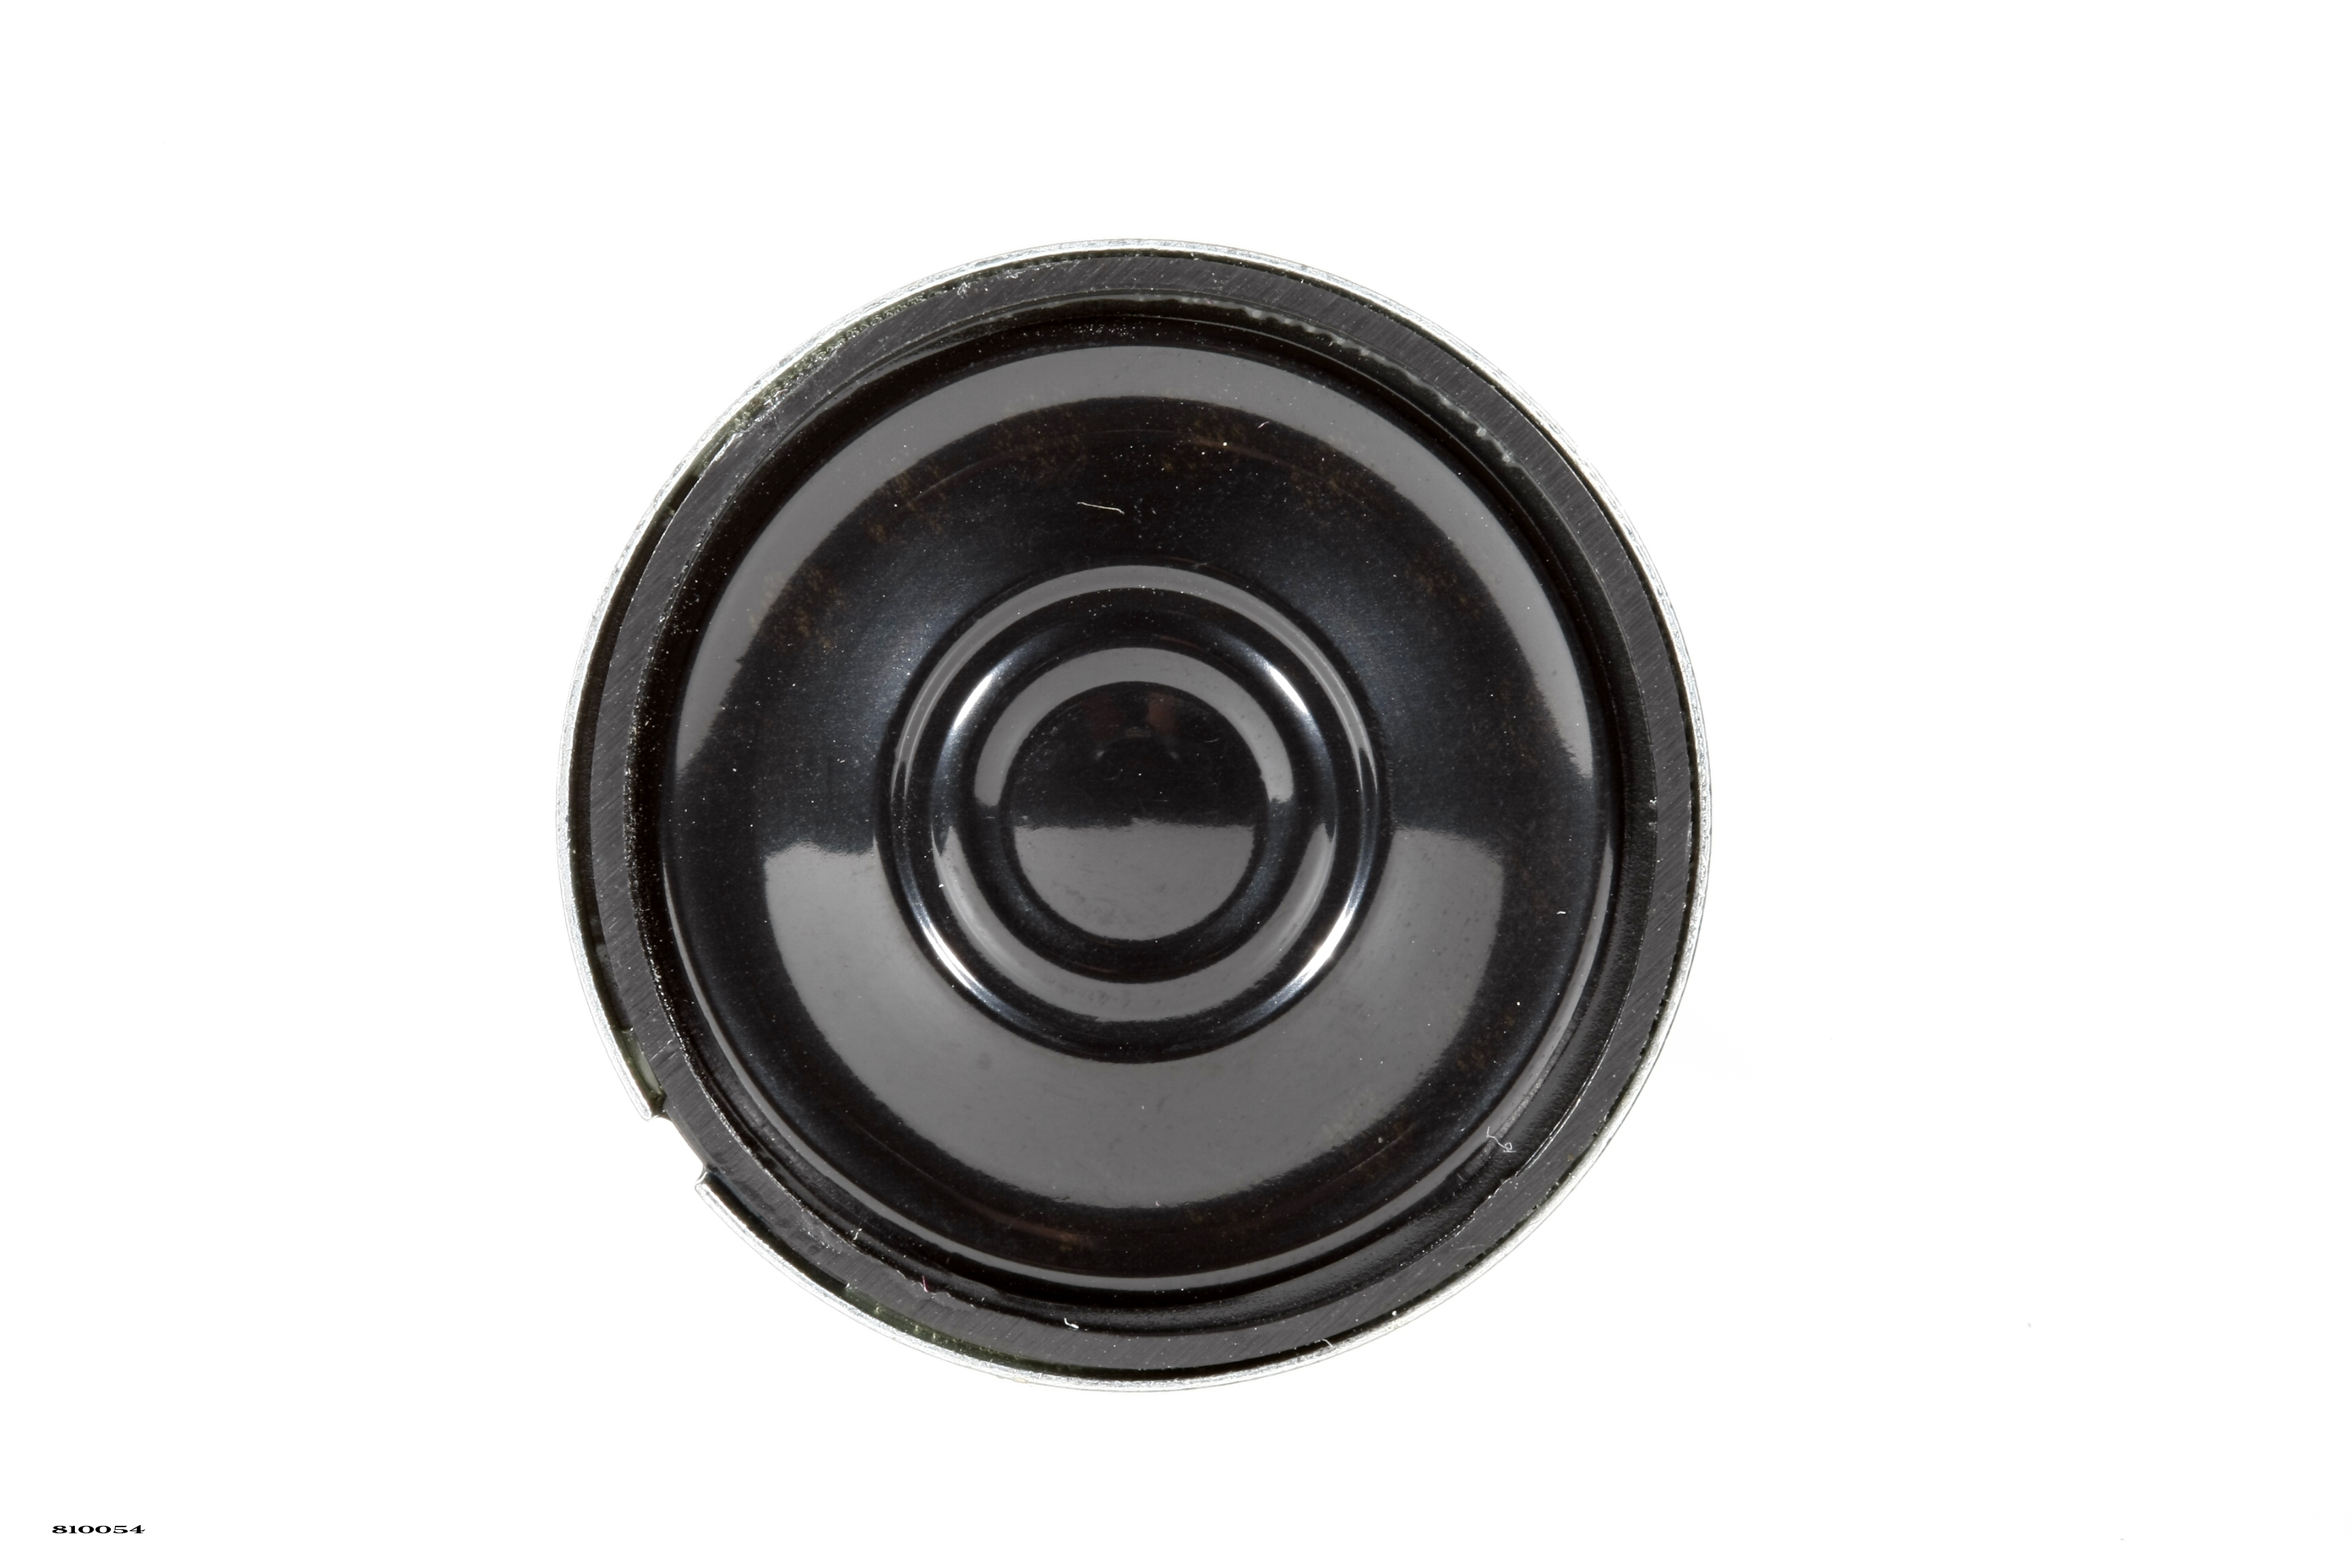 SOUNDTRAXX 810114 30 mm Round Speaker